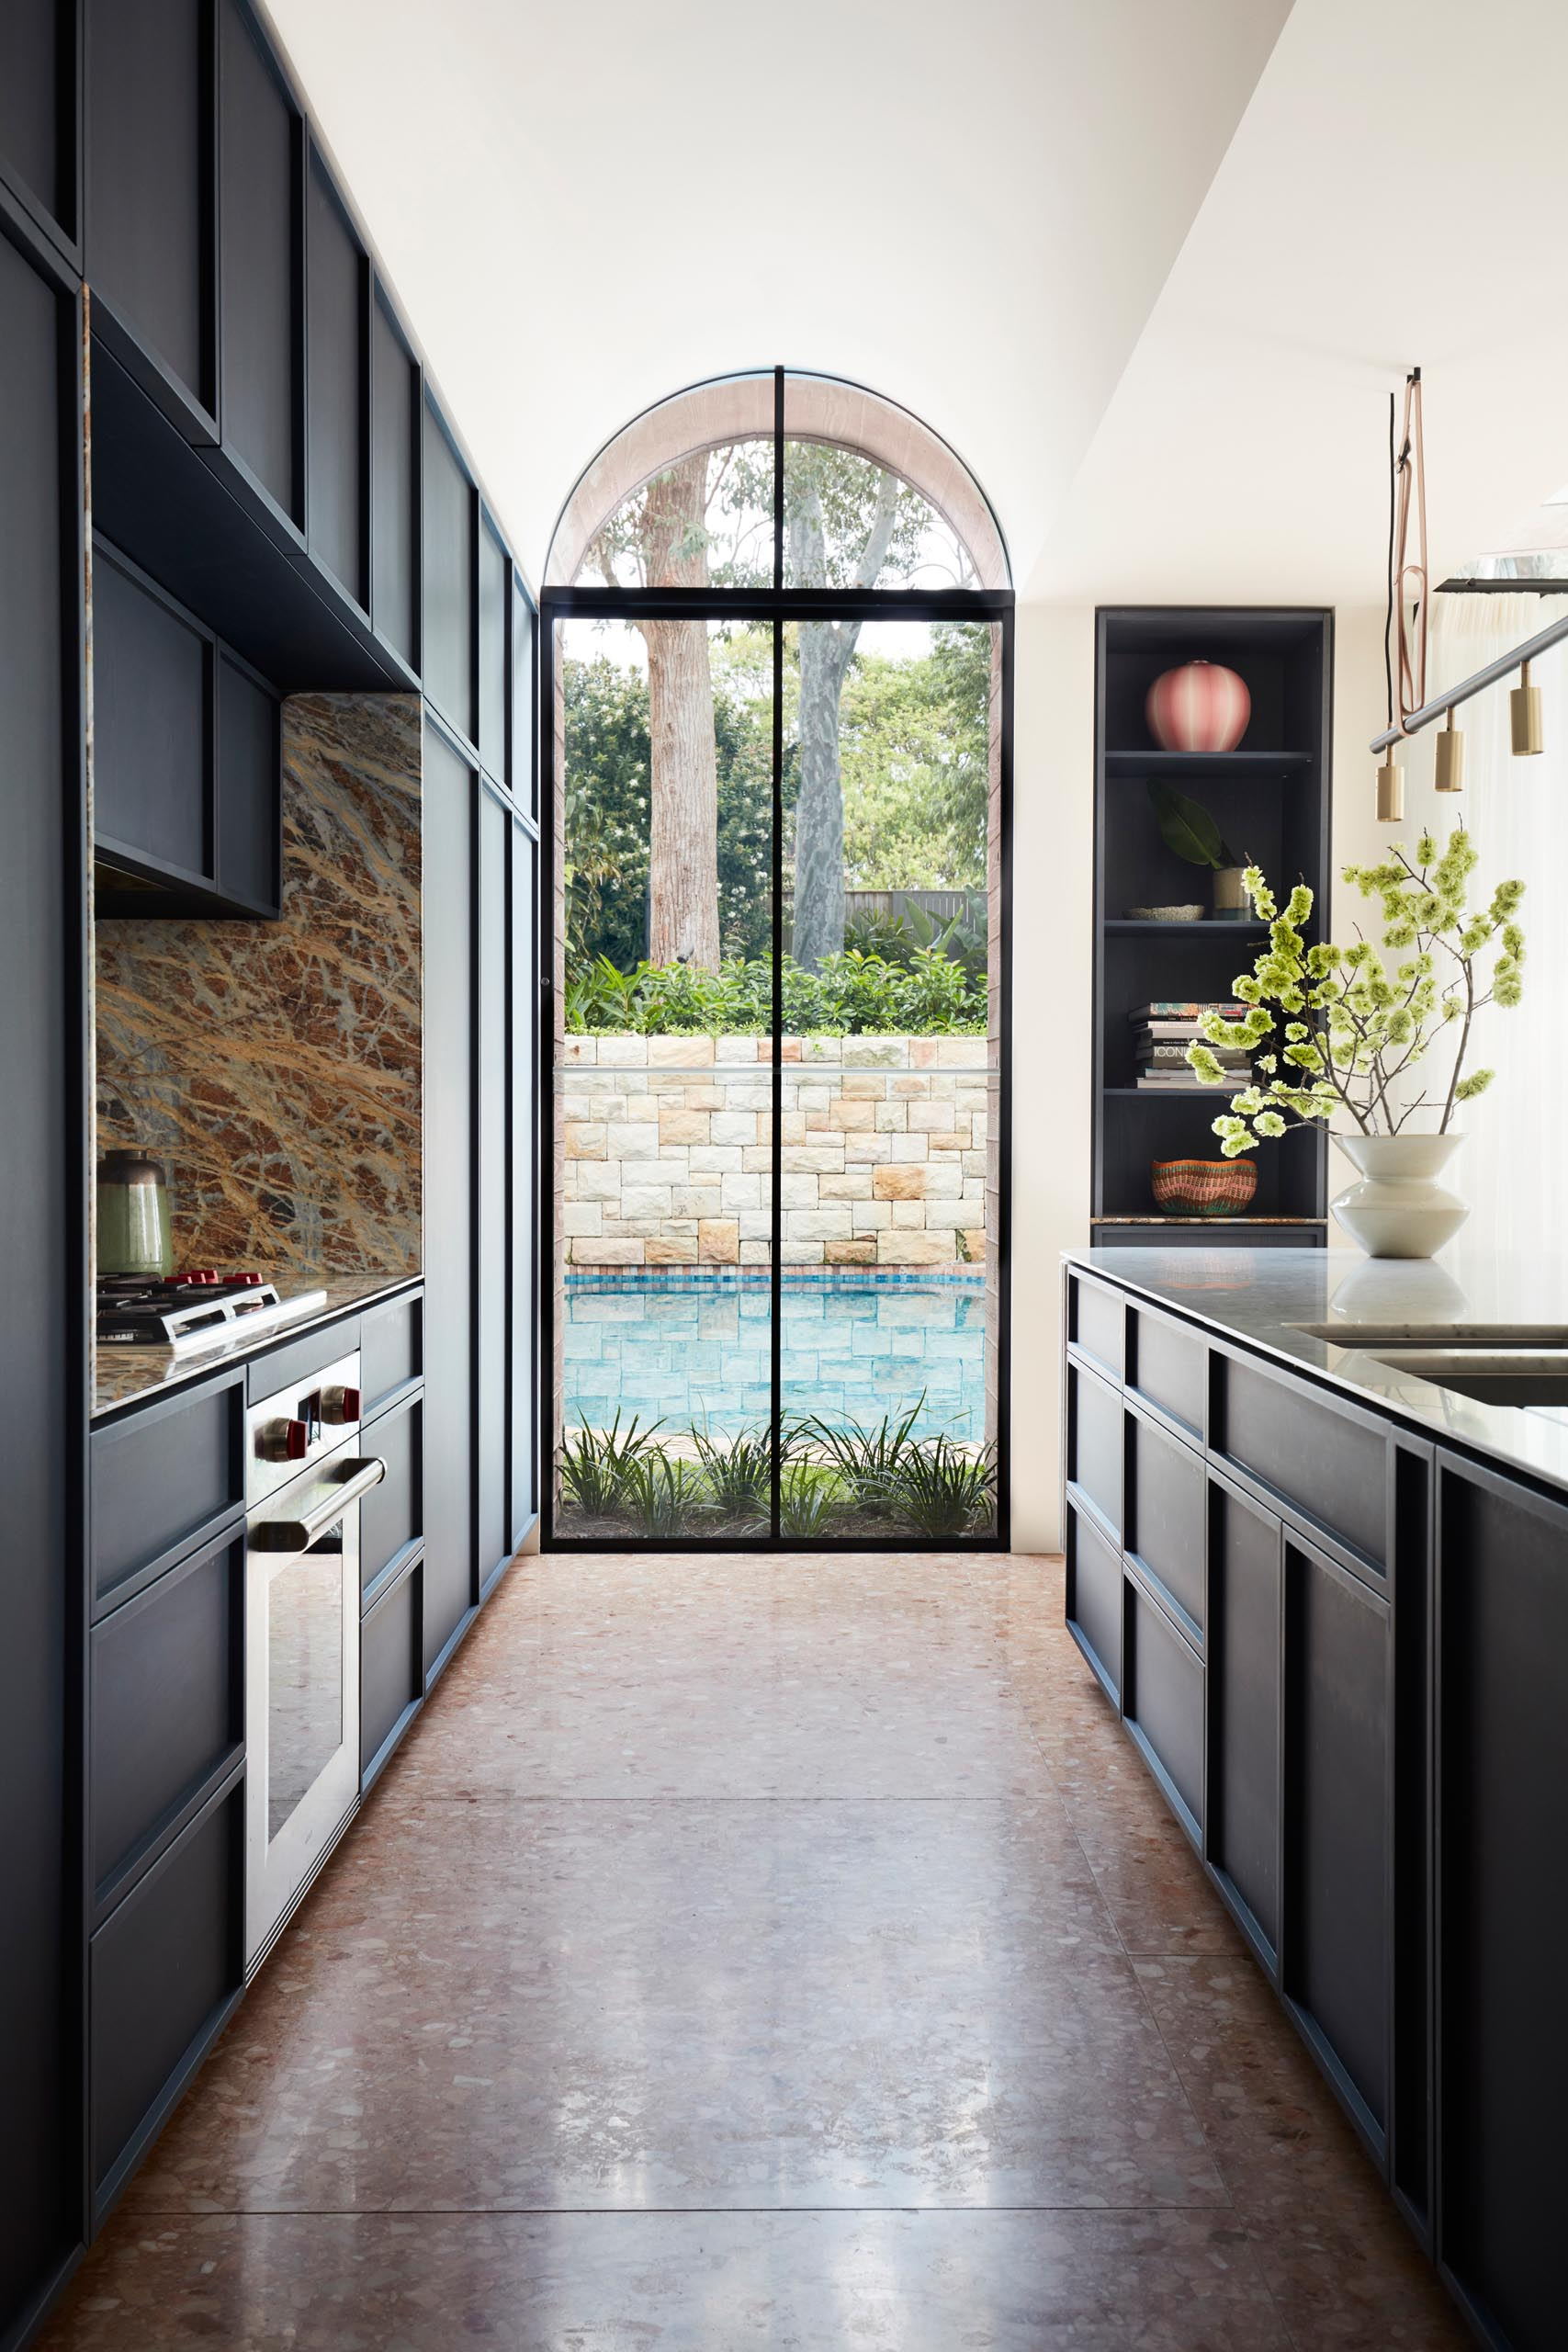 A modern kitchen with dark hardware free cabinets, and a large arched window with views of the swimming pool.